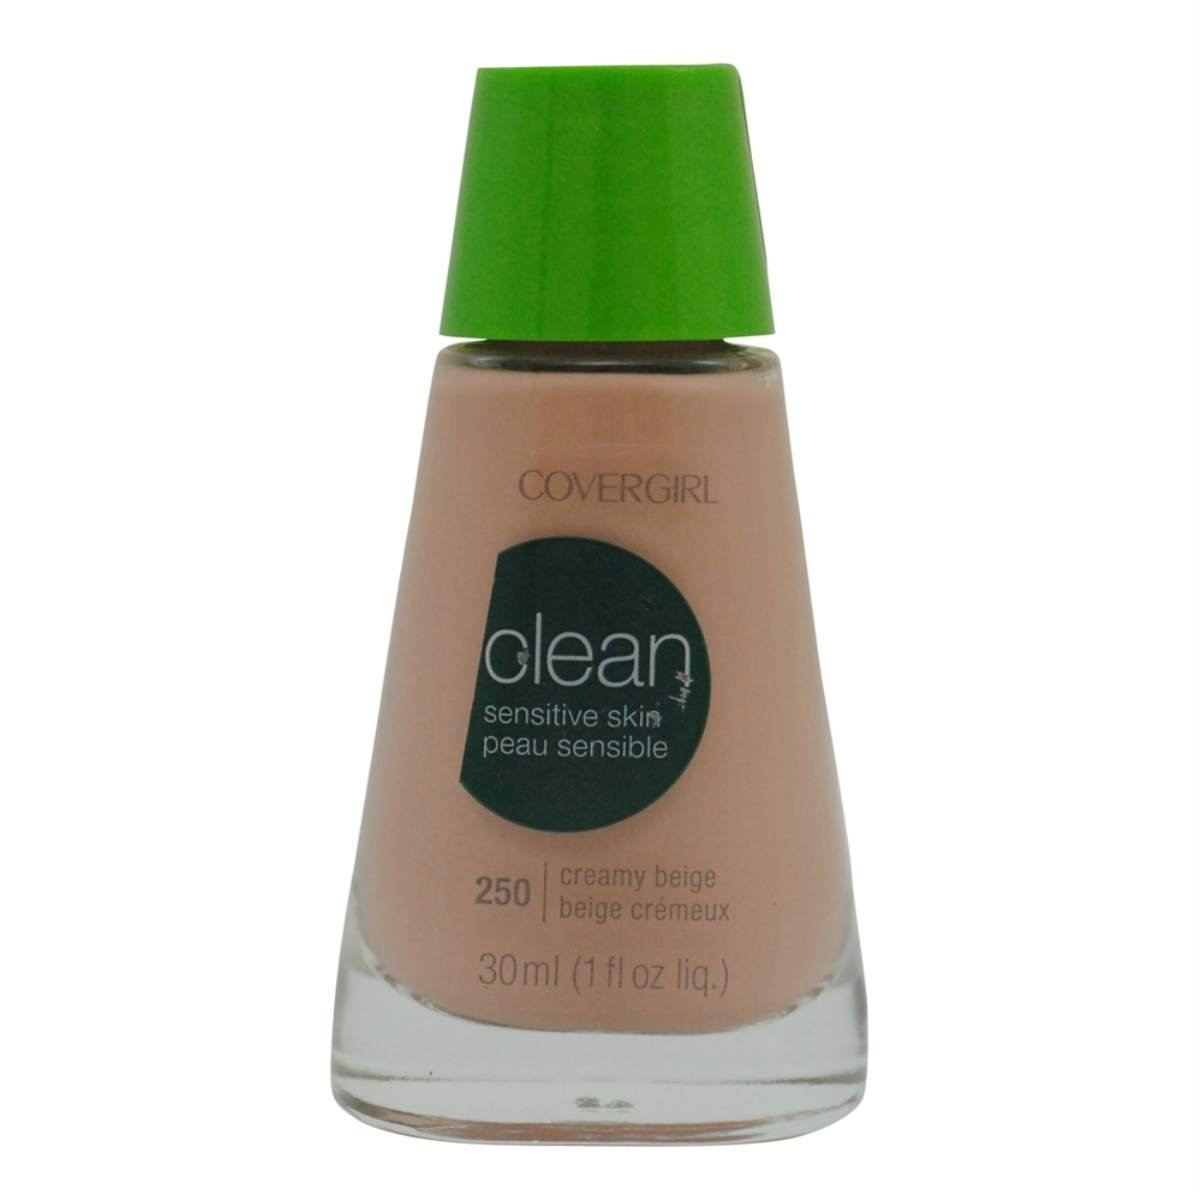 Amazon.com : CoverGirl Clean Sensitive Skin Liquid Makeup, Creamy Beige 250, 1.0 Ounce Bottles : Foundation Makeup : Beauty